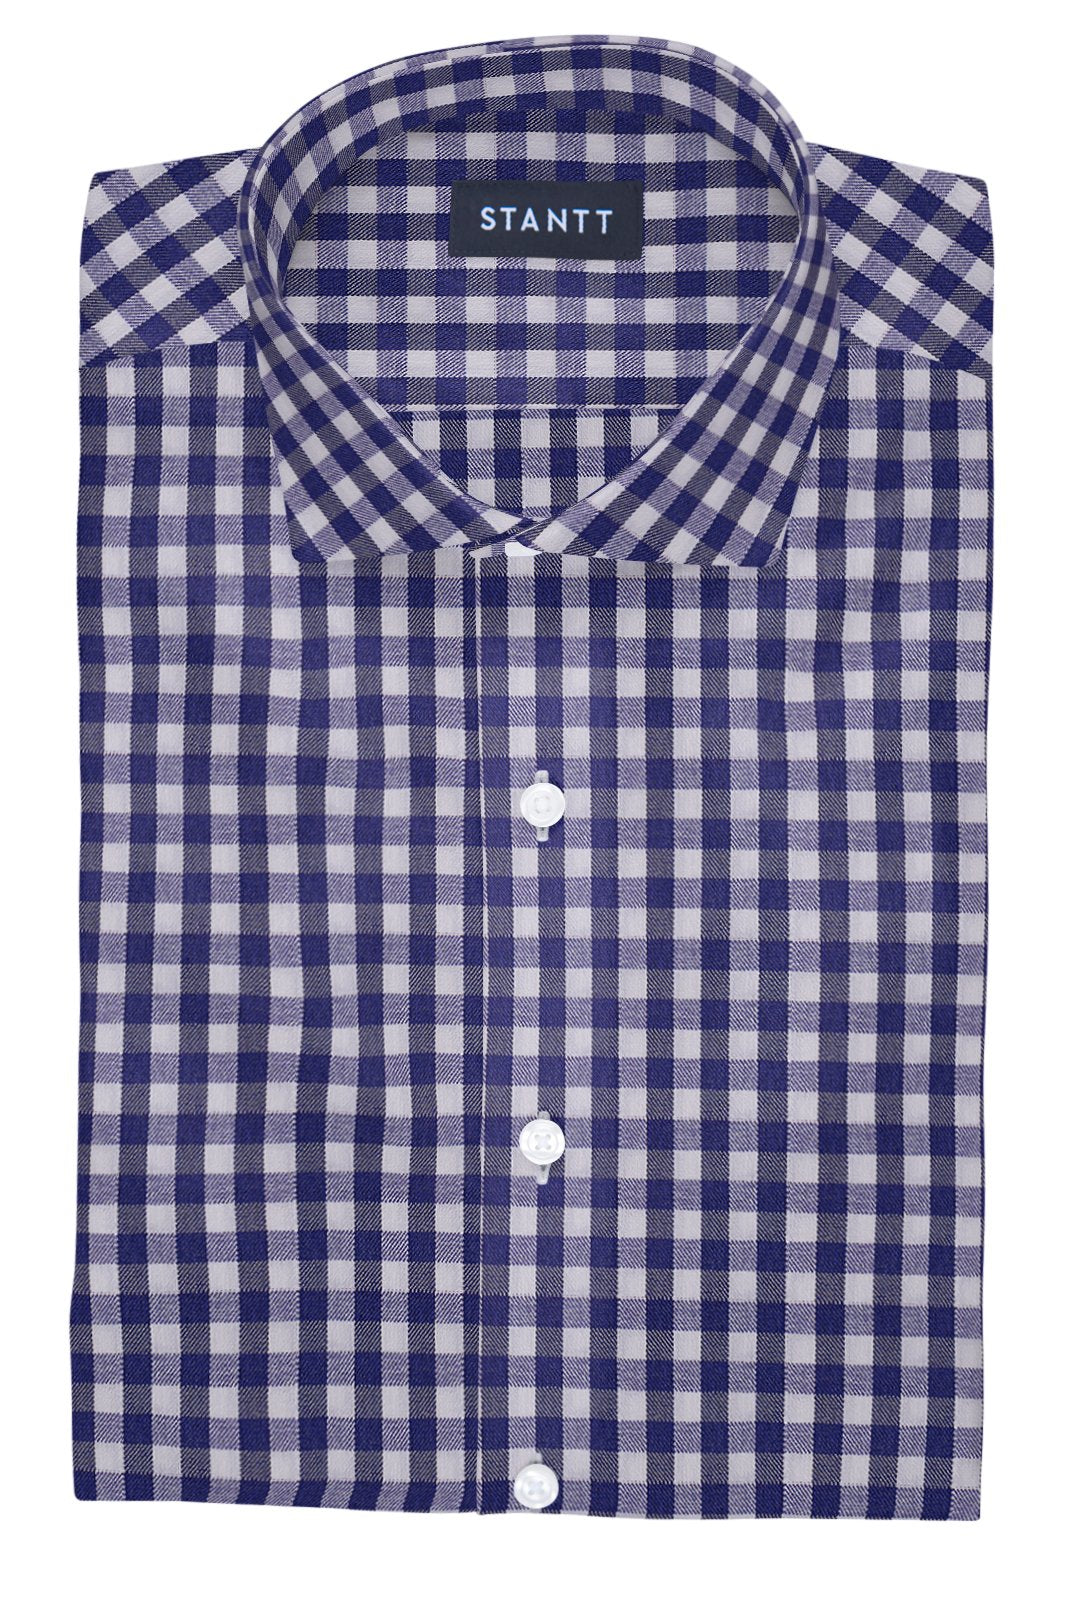 Performance Indigo Gingham: Cutaway Collar, French Cuff